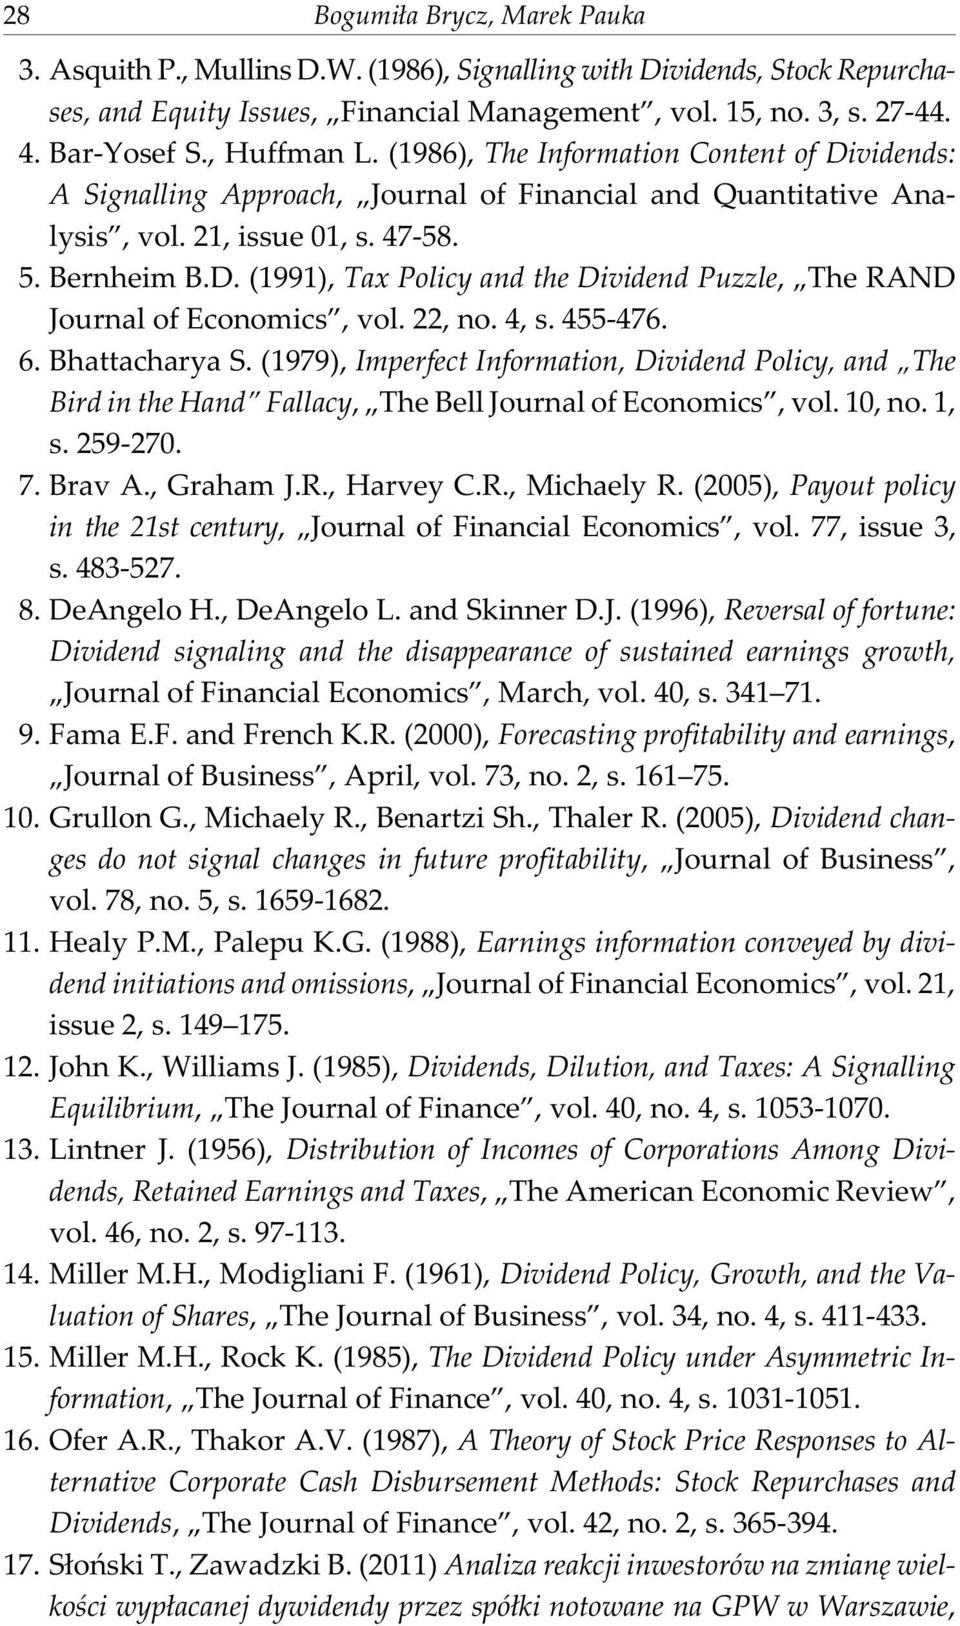 22, no. 4, s. 455-476. 6. Bhattacharya S. (1979), Imperfect Information, Dividend Policy, and The Bird in the Hand Fallacy, The Bell Journal of Economics, vol. 10, no. 1, s. 259-270. 7. Brav A.